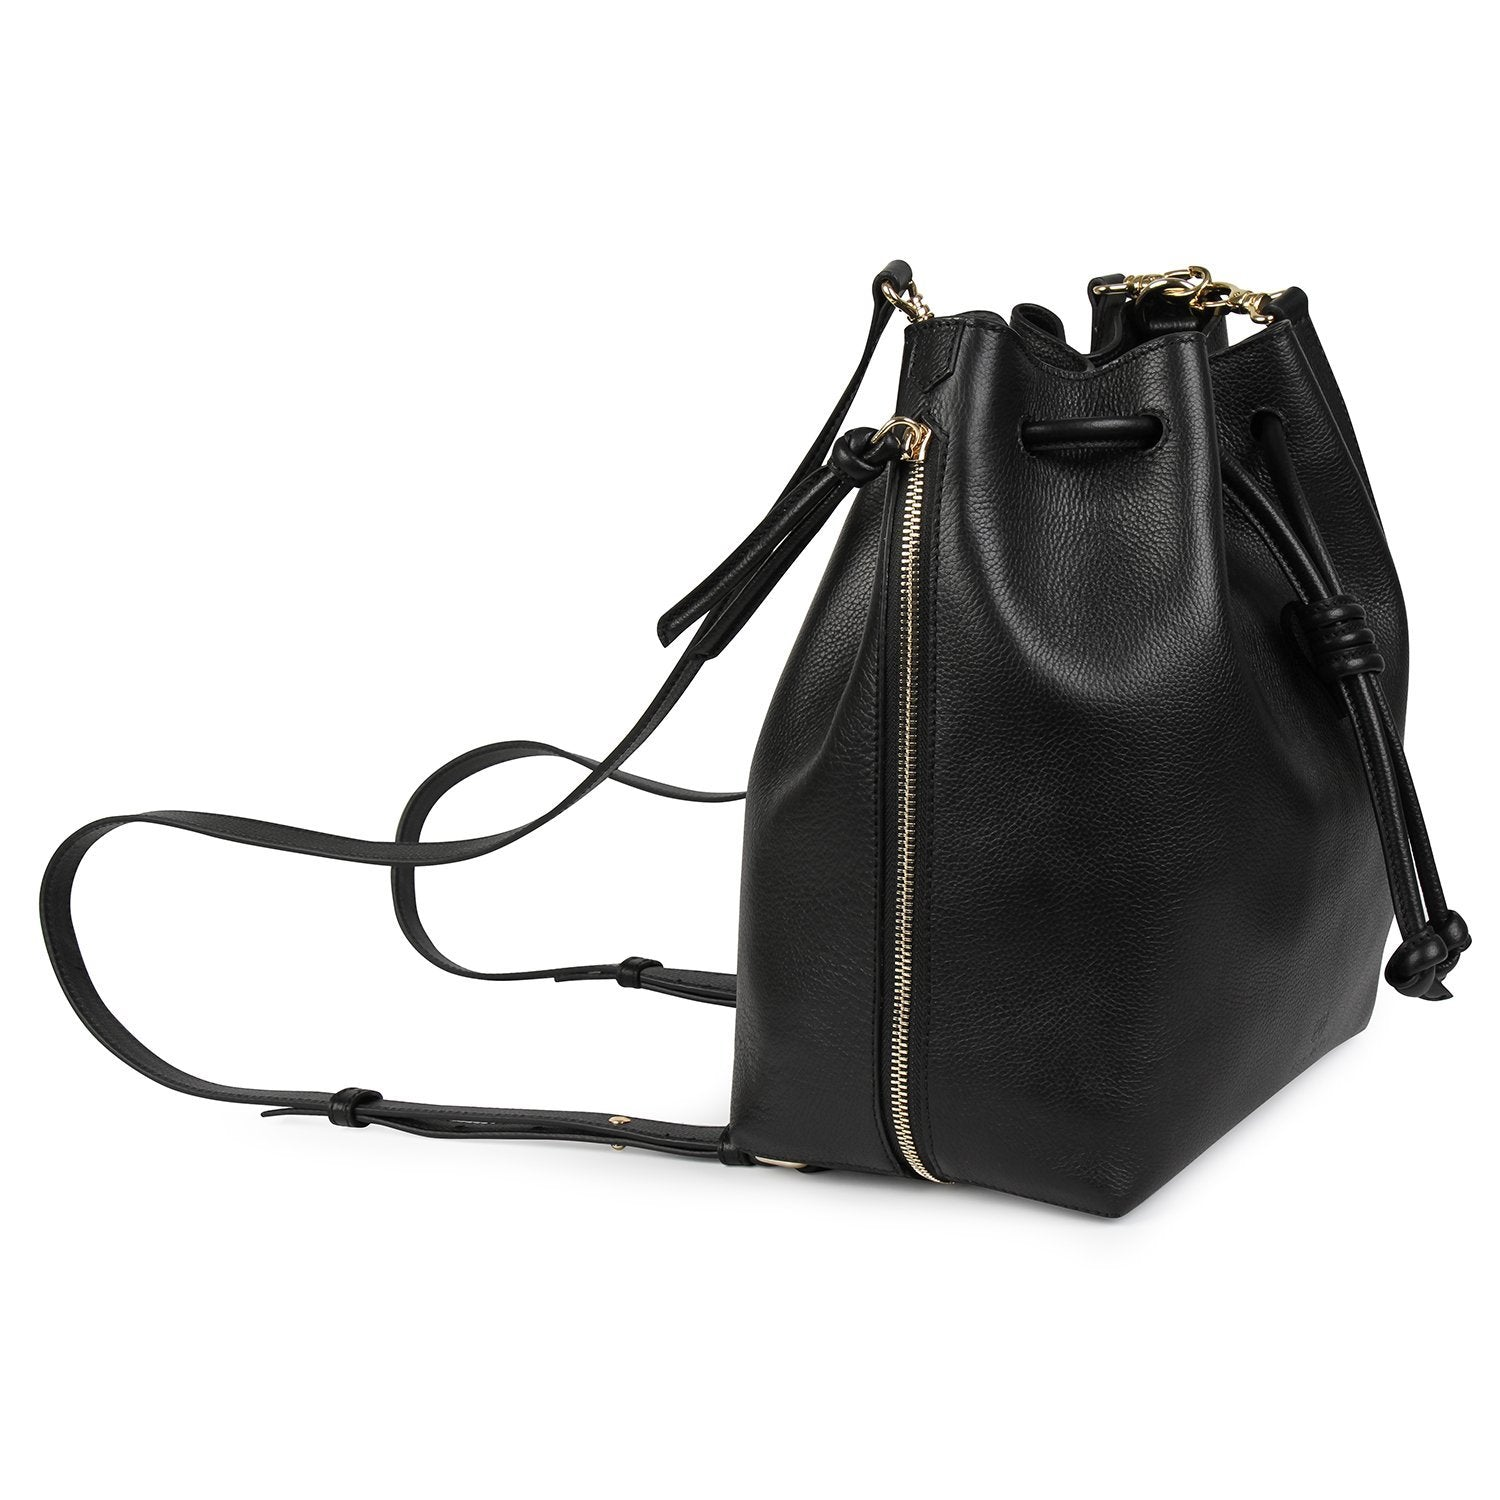 A convertible laptop size womens black leather backpack that could be used as a crossbody as well as a bucket bag, zippers closed, side image.